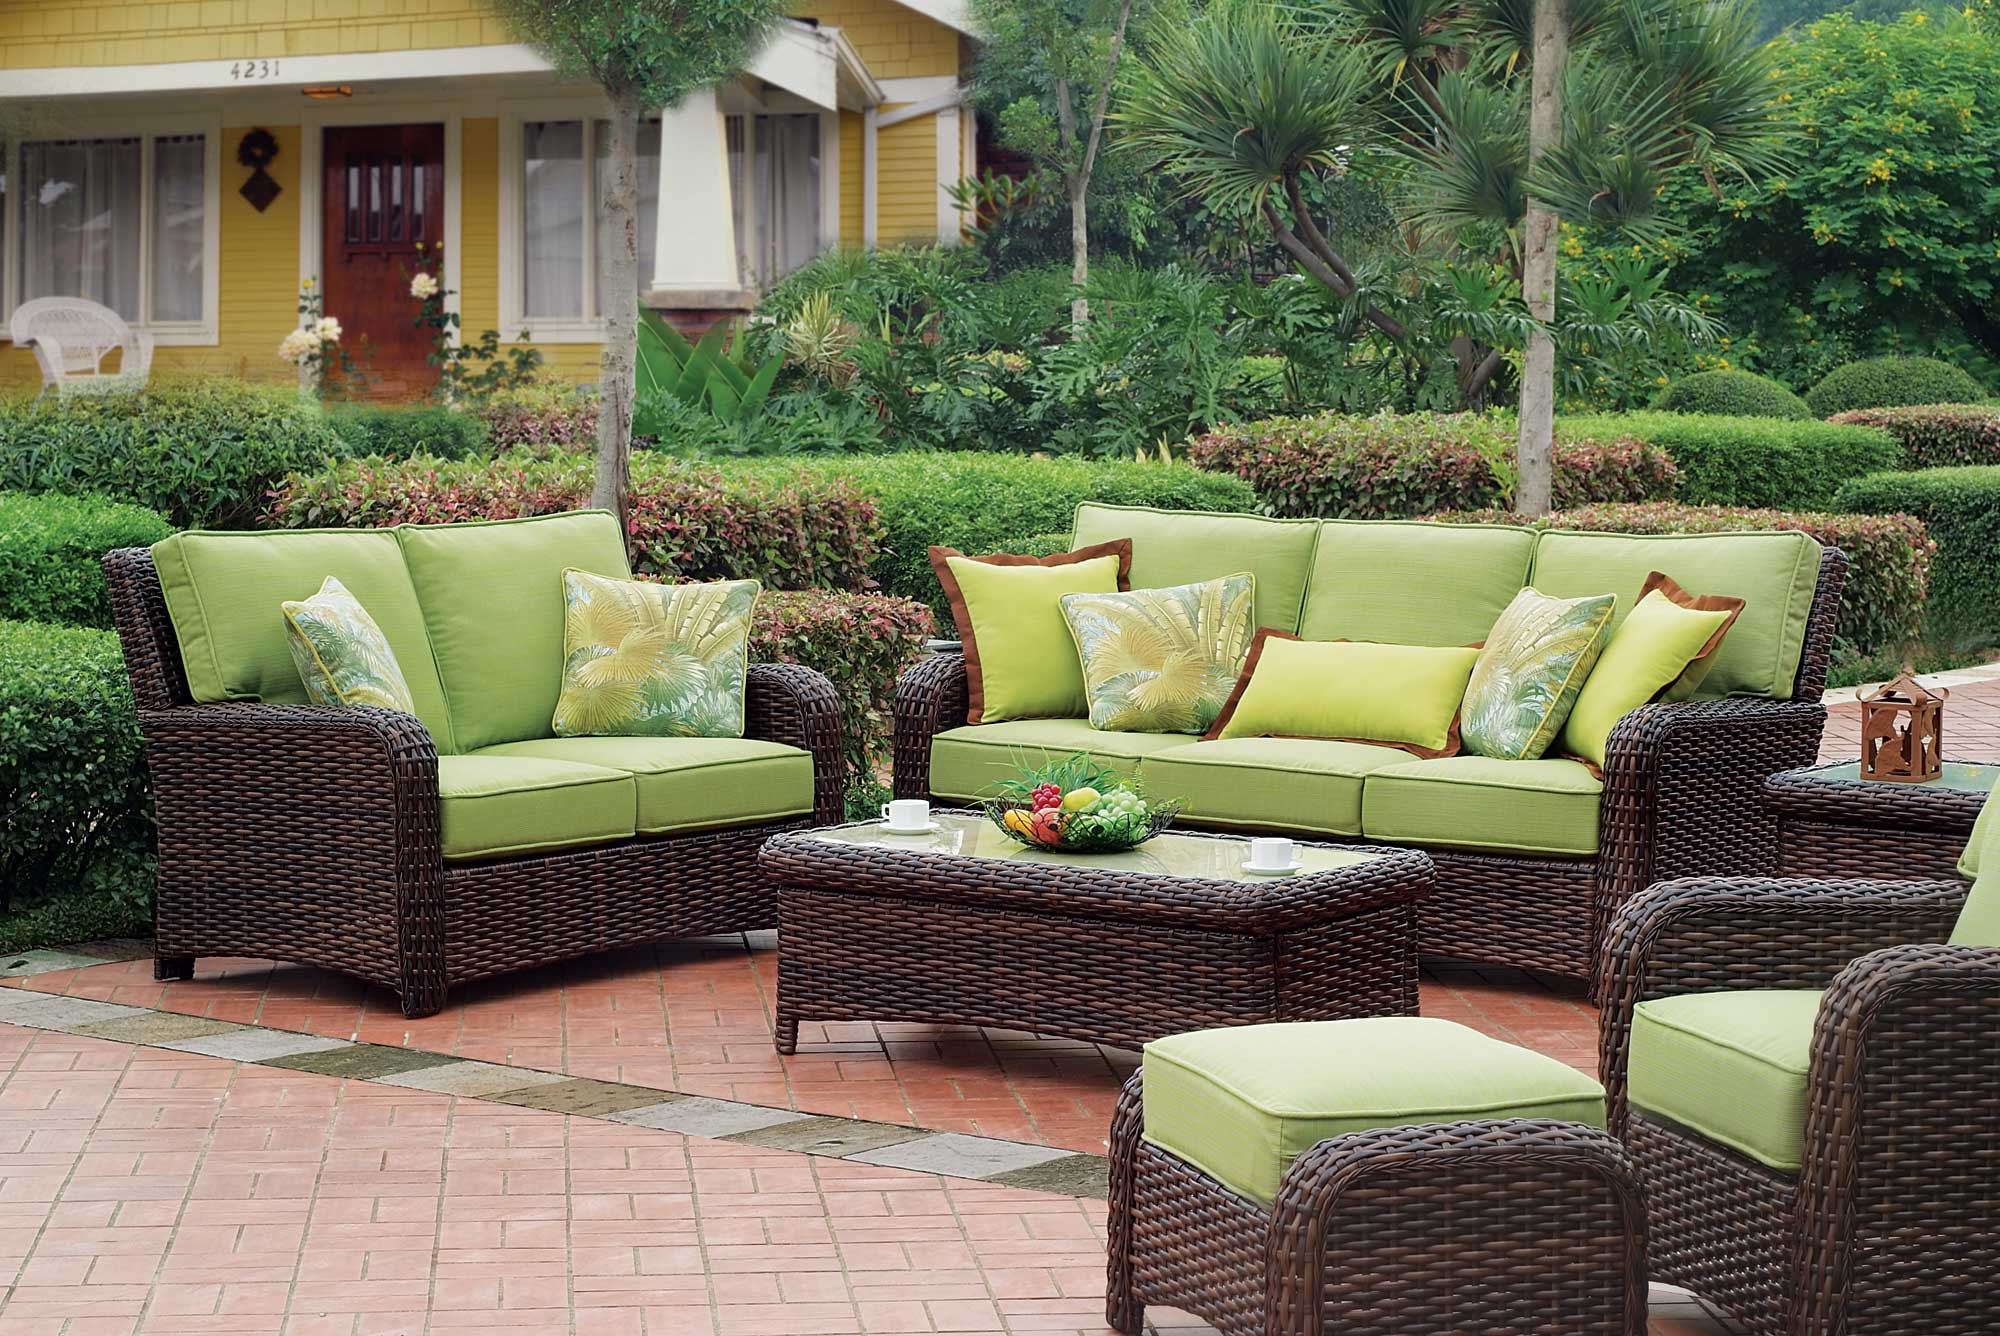 Outdoor Living: Tips for Keeping Your Rattan Furniture ... on Outdoor Living Wicker  id=82089